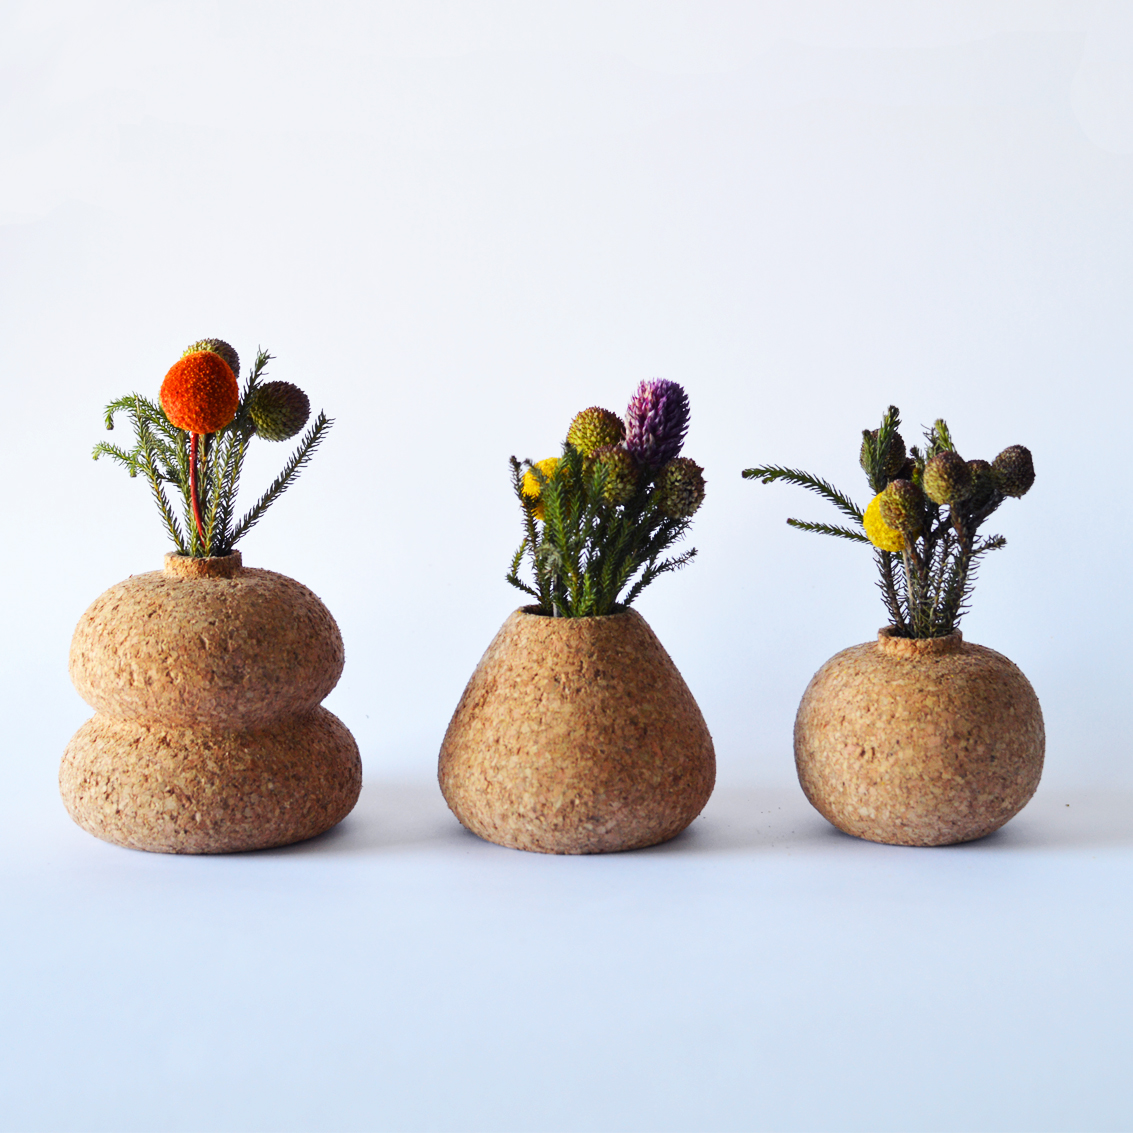 Cork Vases looking cute side by side.